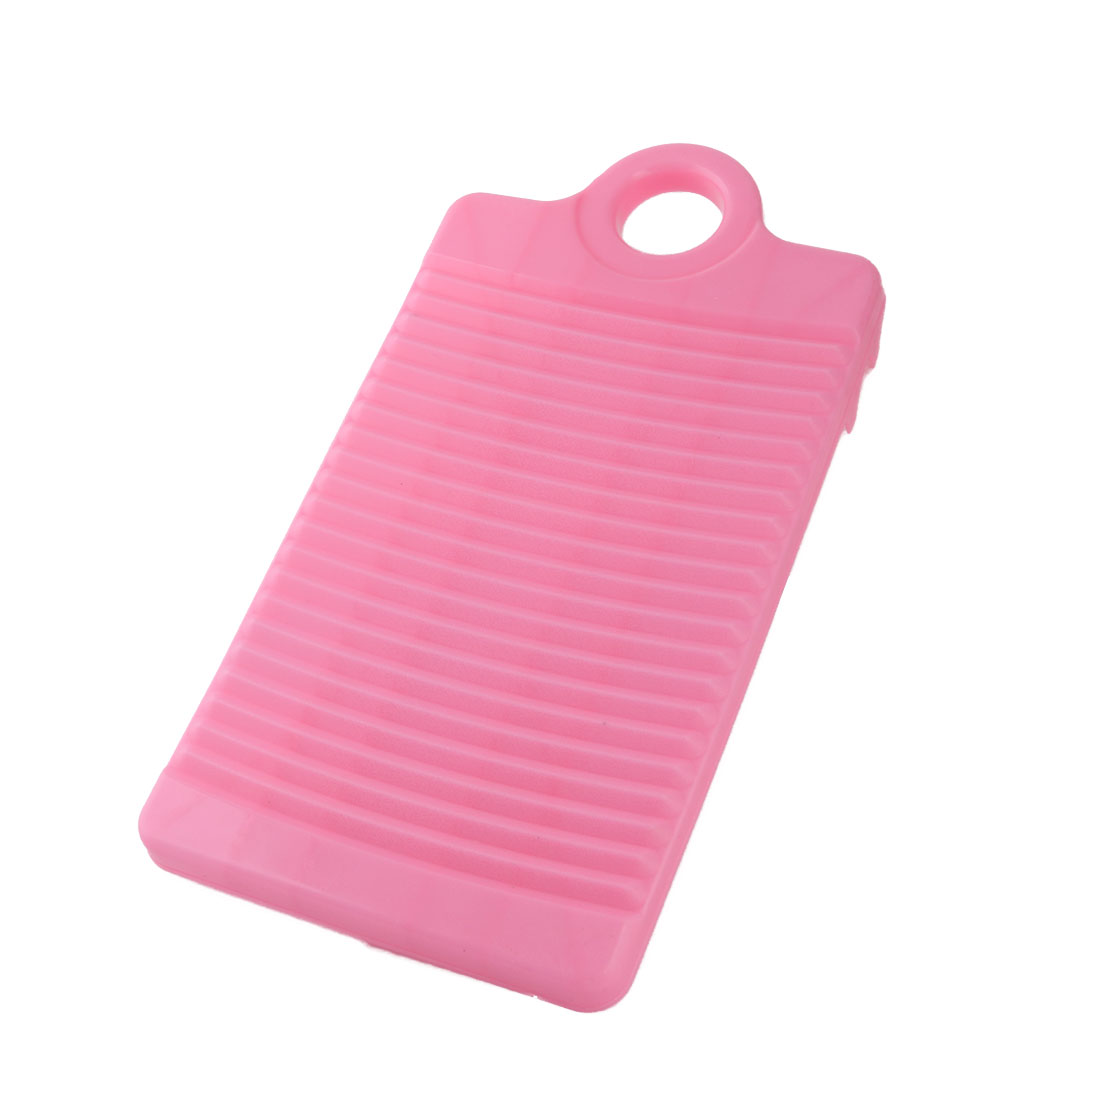 Laundry Bathroom Plastic Rectangle Clothes Garment Pants Washing Board Plate Pink